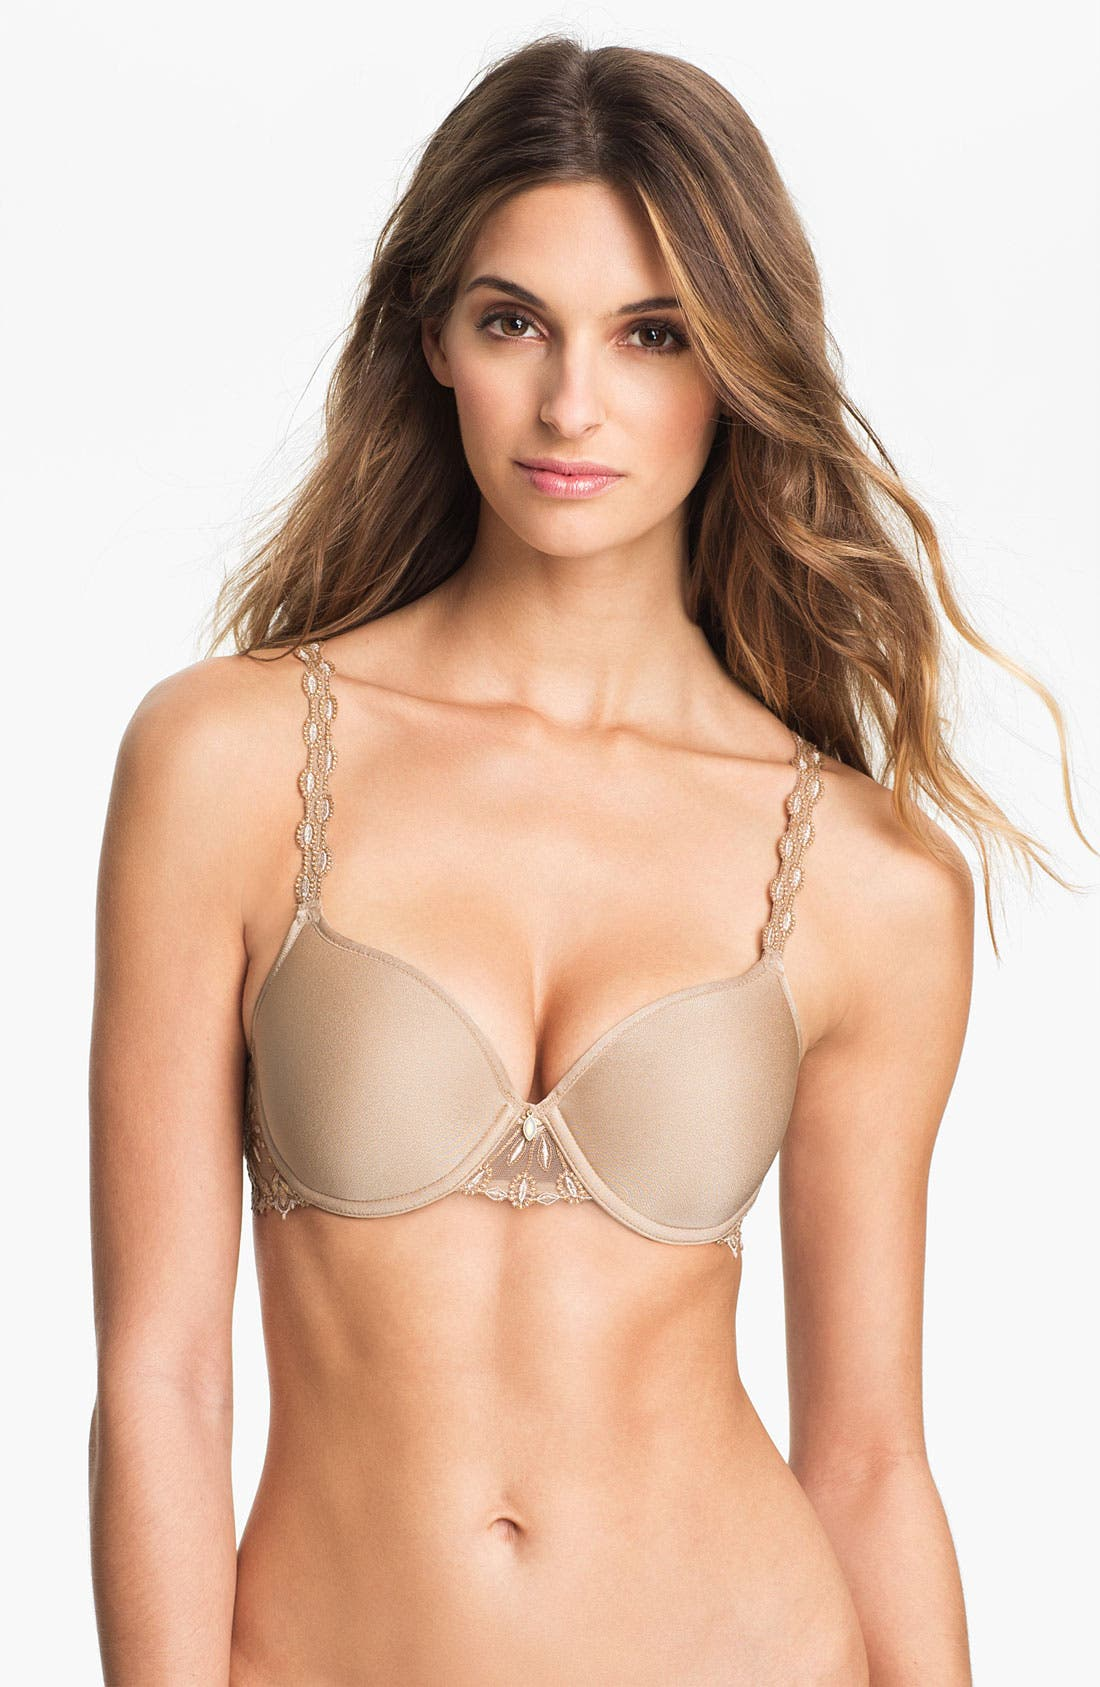 Main Image - Chantelle Intimates 'Vendôme' Convertible Underwire T-Shirt Bra